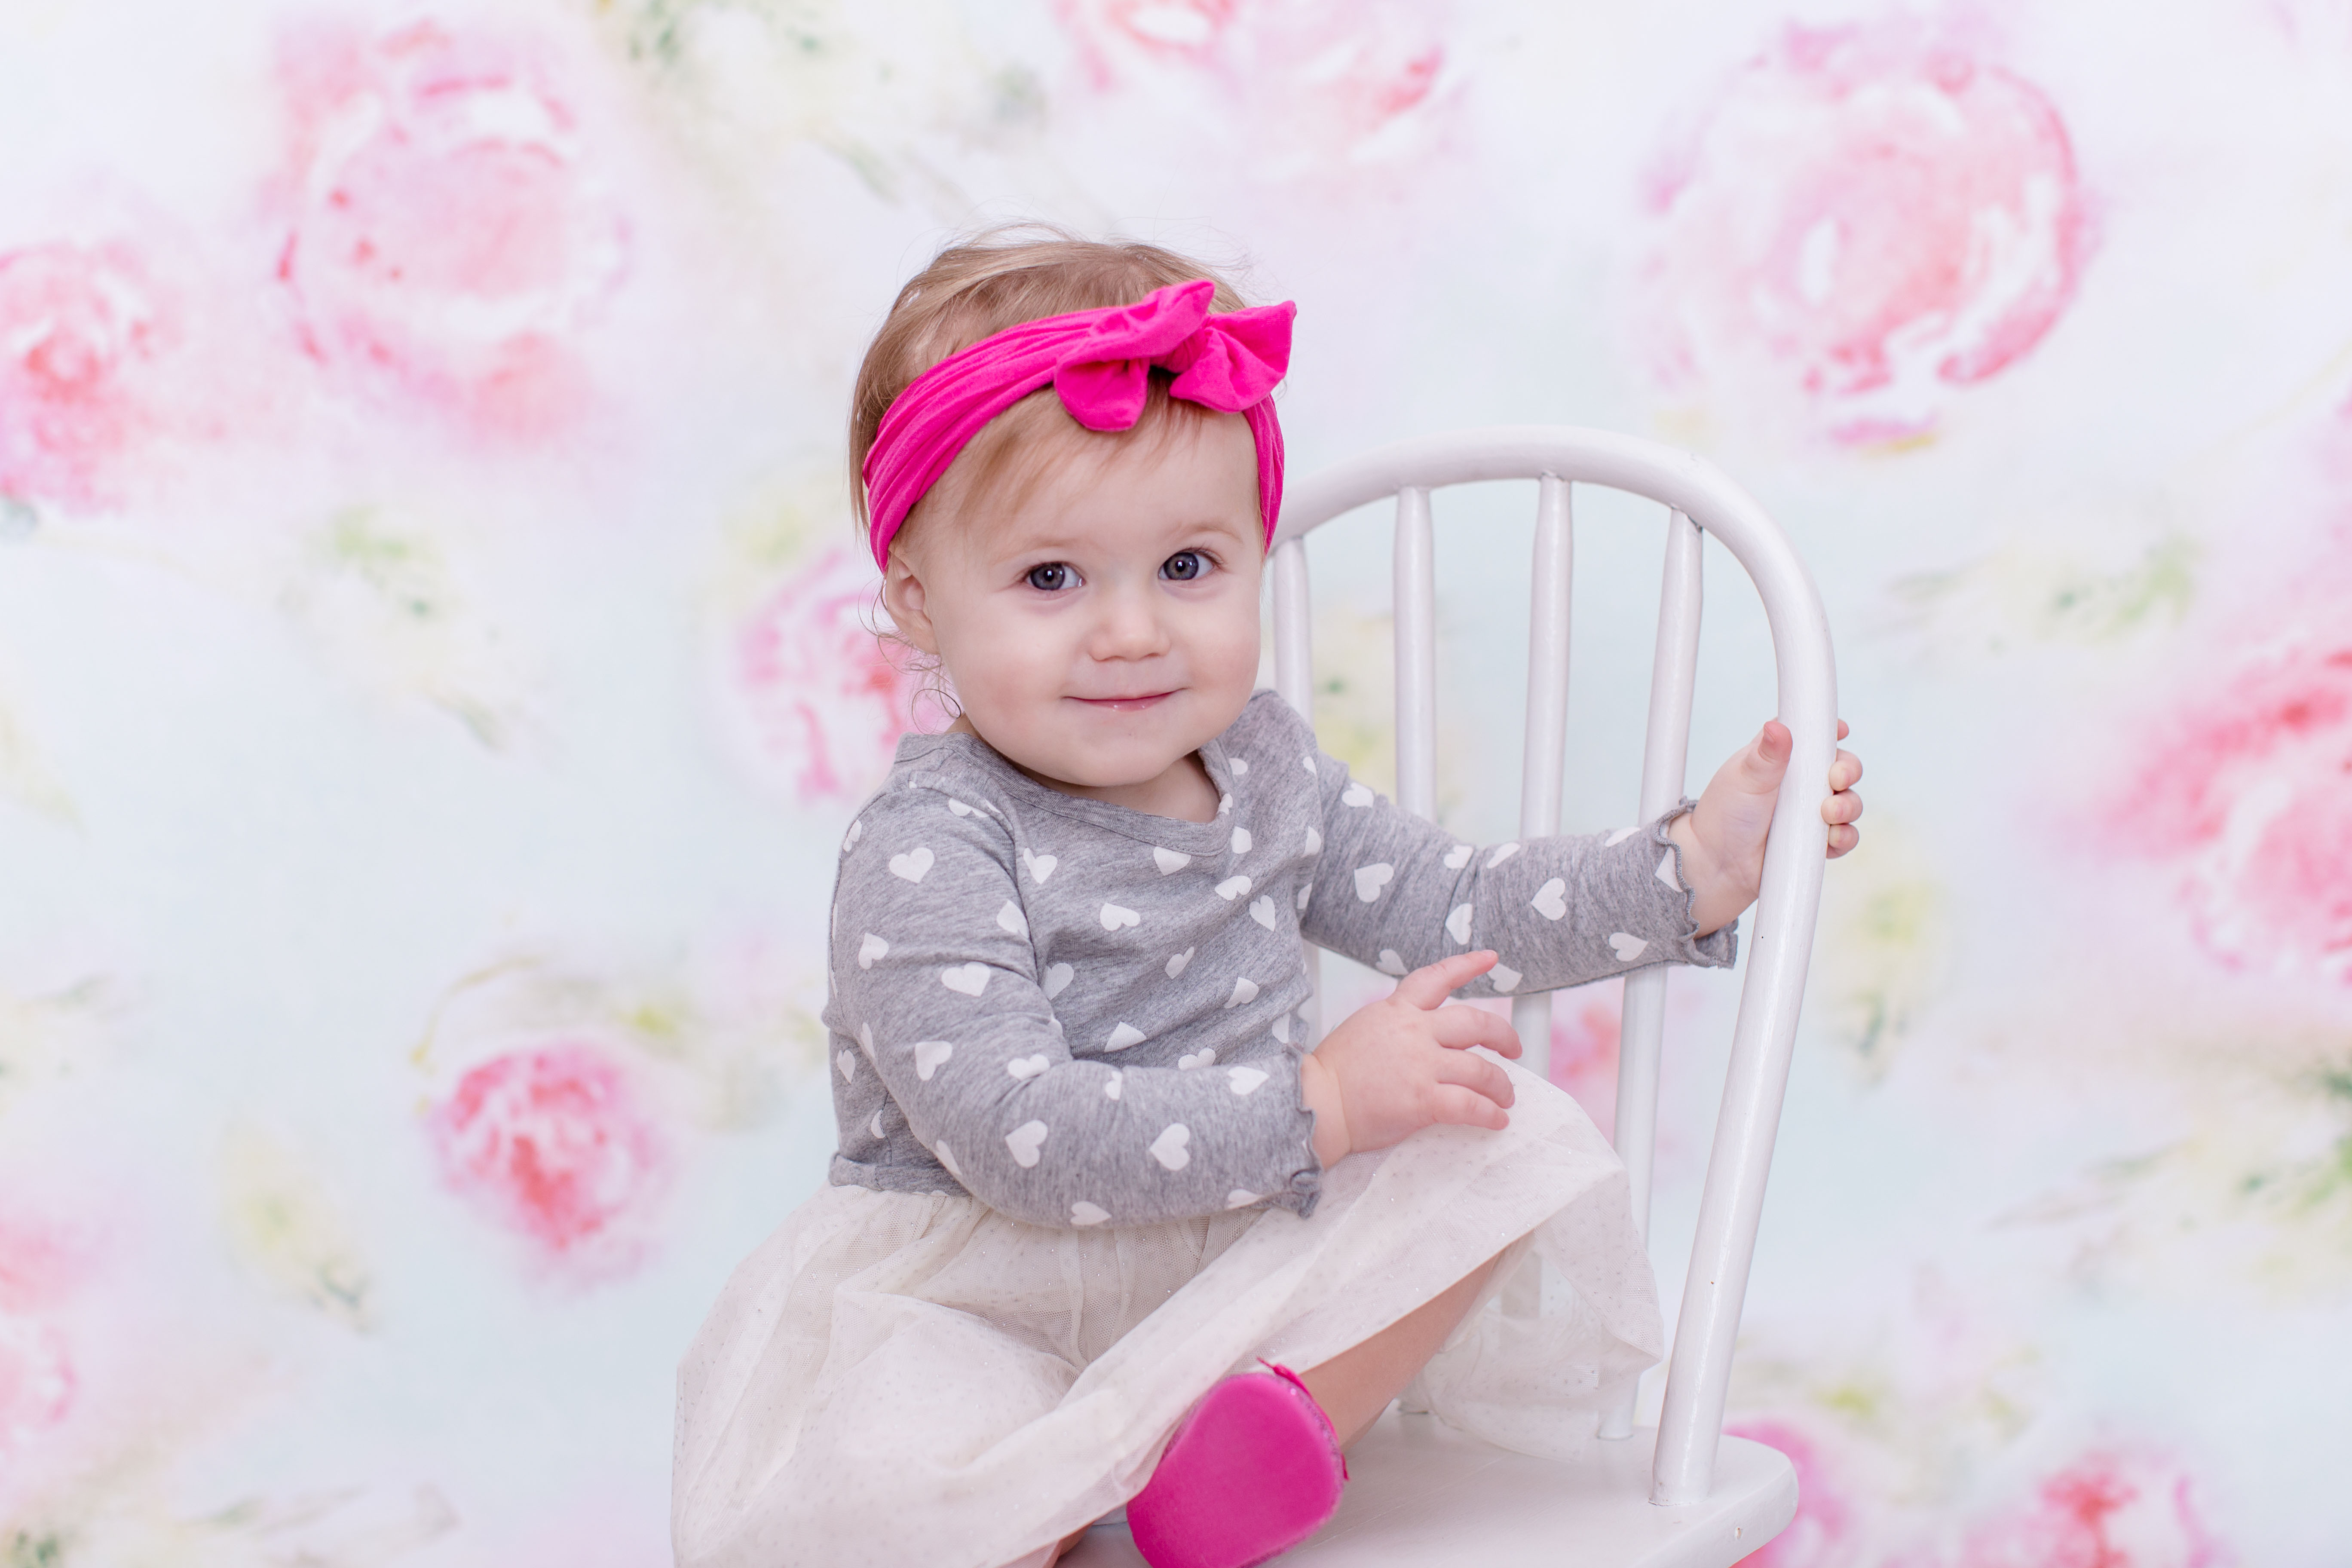 View More: http://lindseyklyn.pass.us/kinsley-schippers-18-months